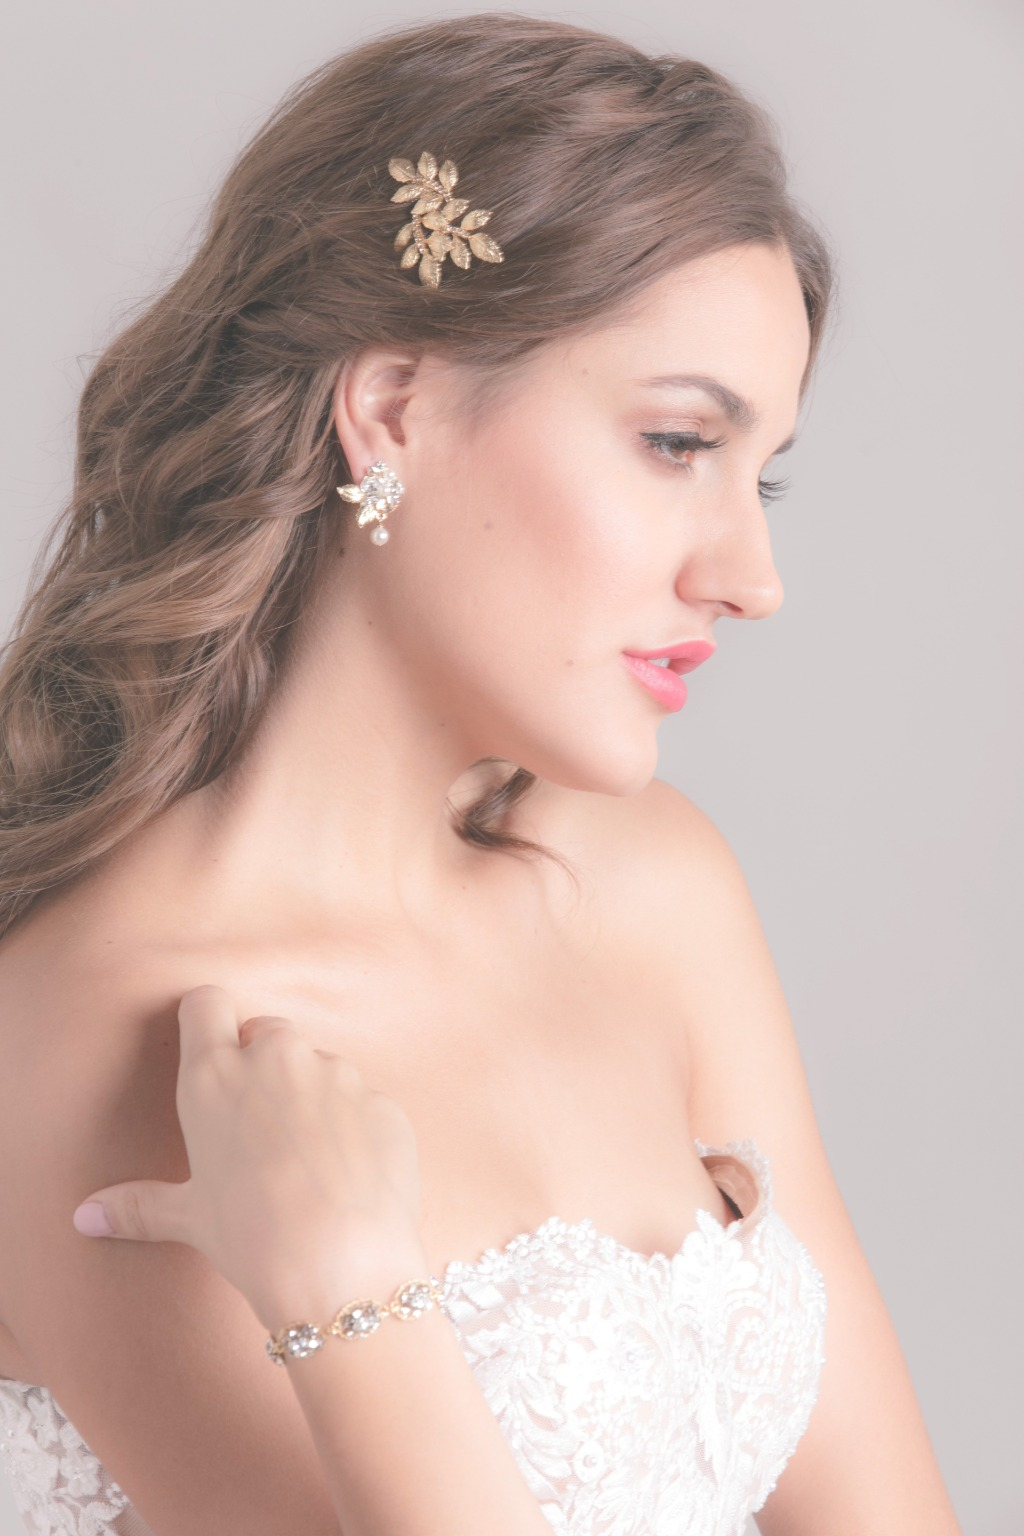 Looking for a delicate wedding hair accessory for the bride and bride maids? To create your unique hairstyle with Fauve leaf comb will